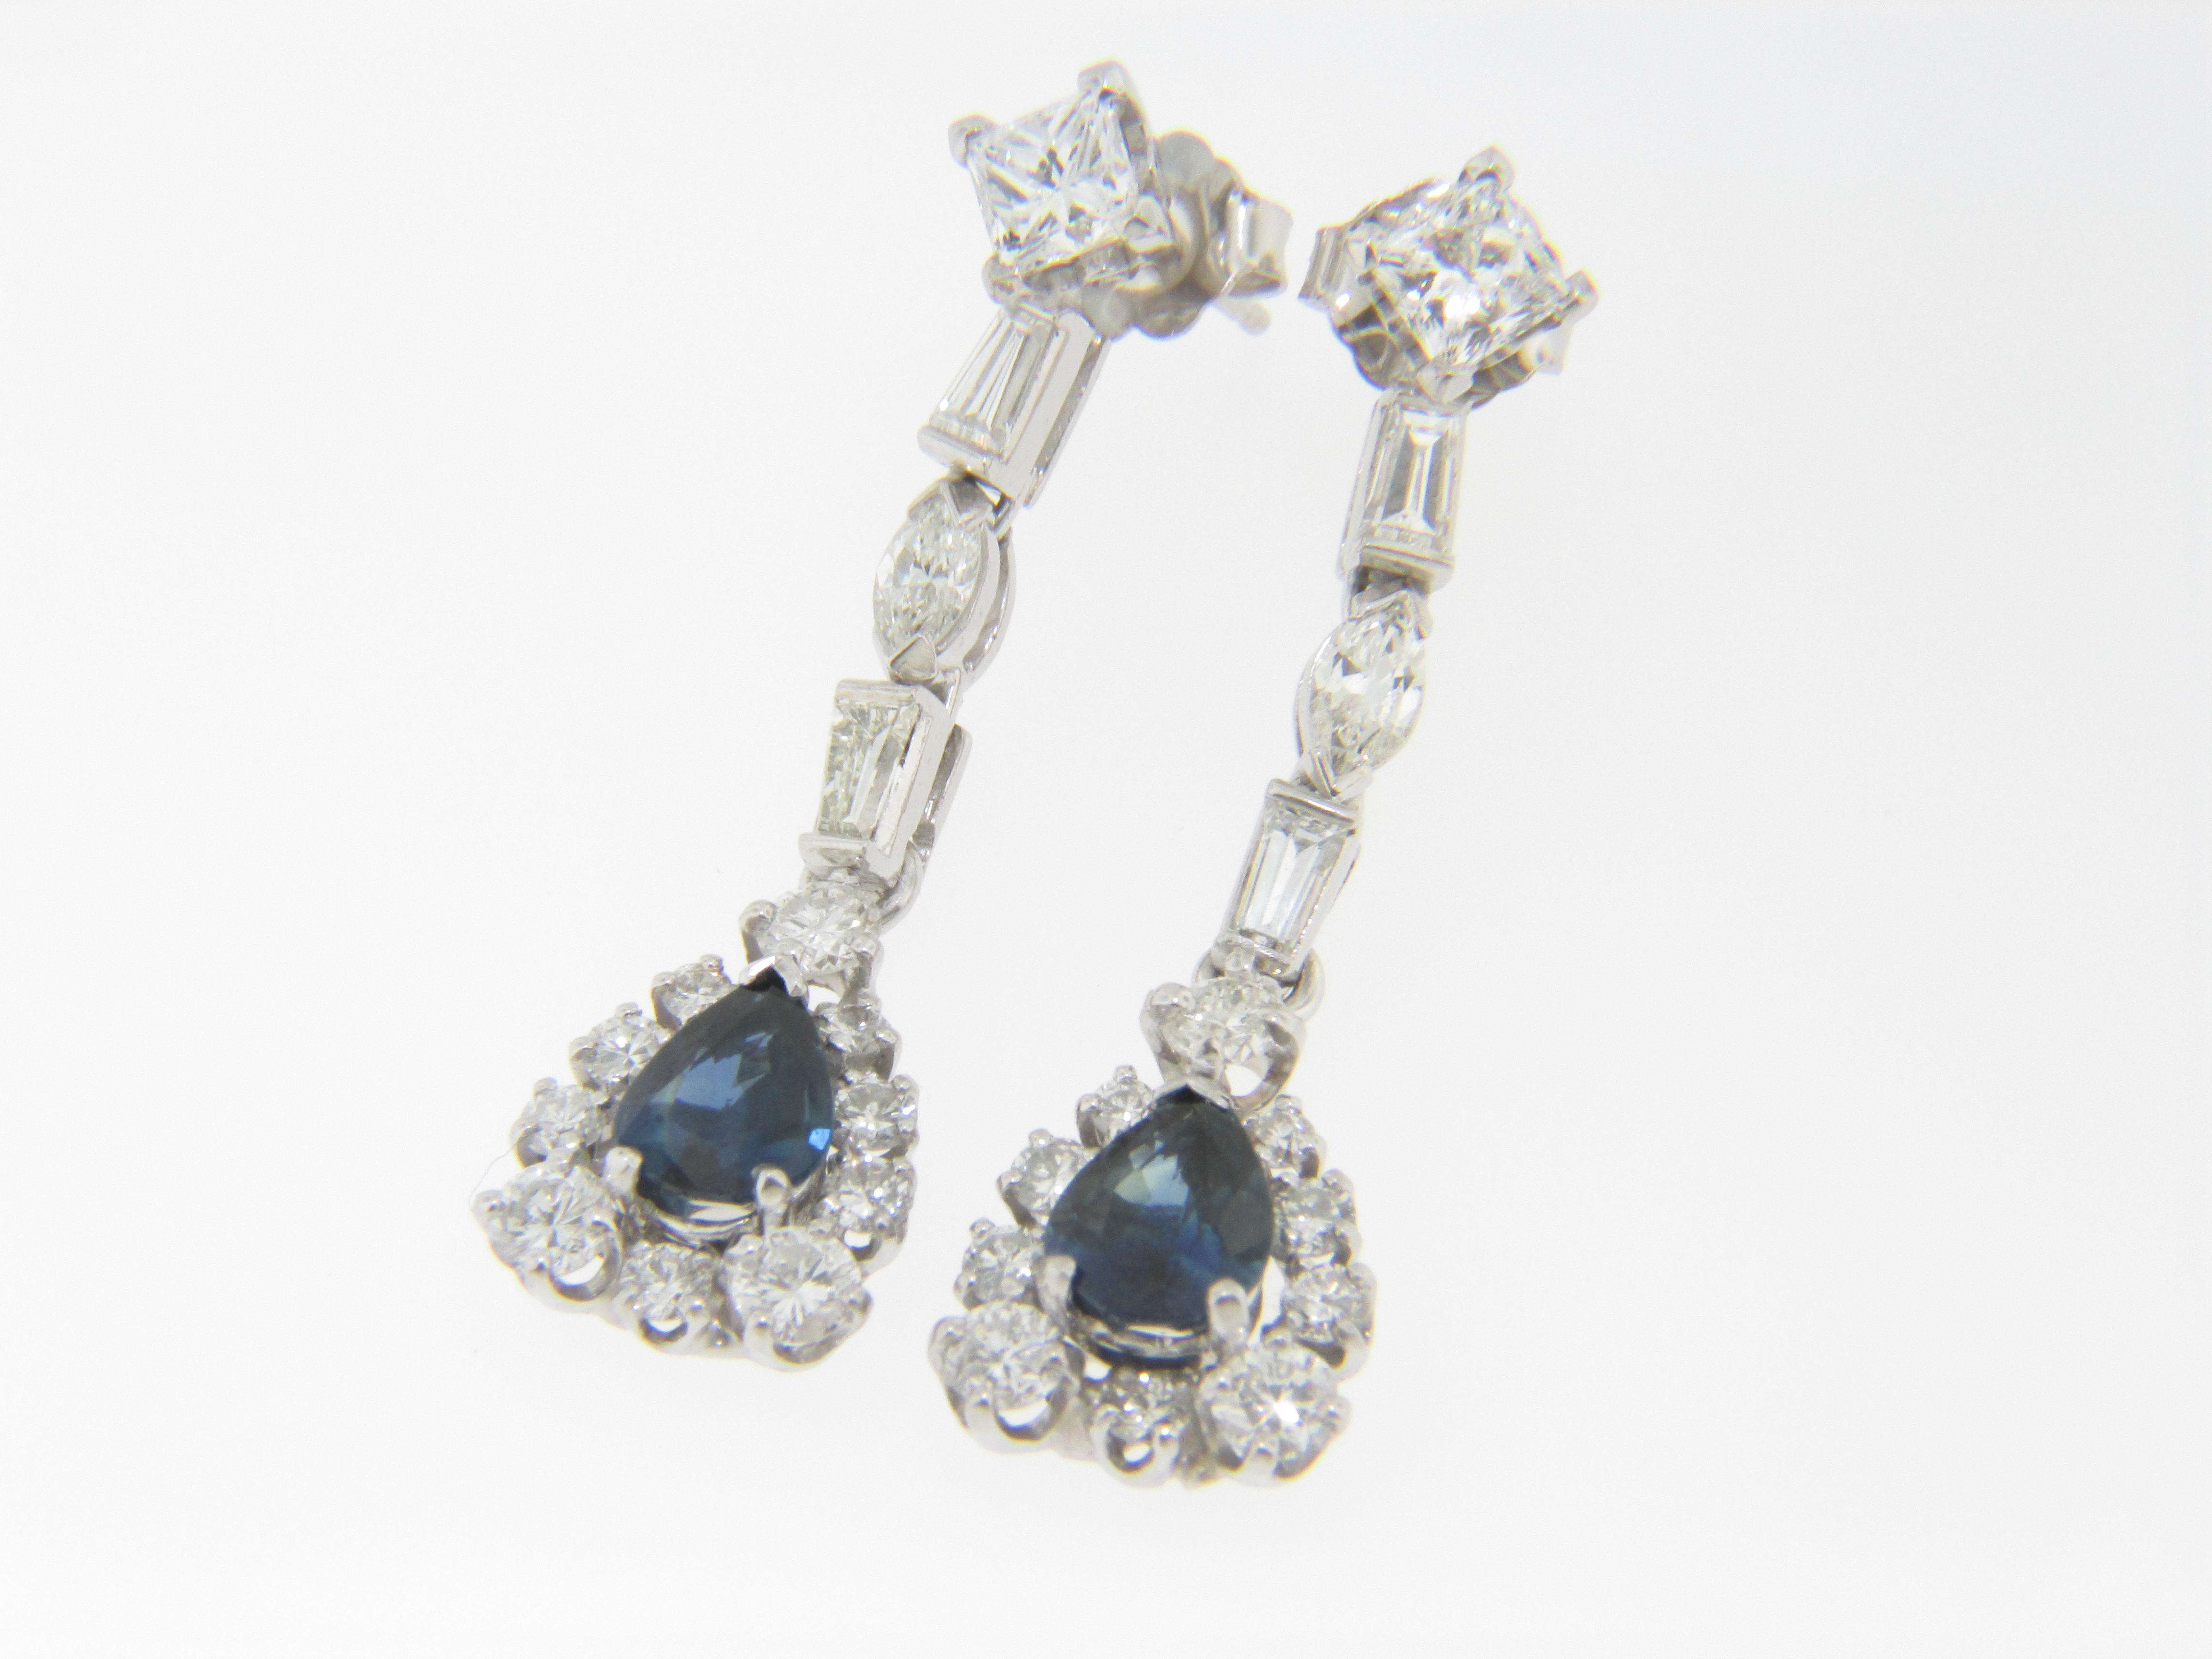 This Is A Pair Of Stunning Vintage 2 0ctw Pear Cut Shire And Diamond Dangle Drop Very Fine Earrings In 14k White Gold The Weighs 5 0 Grams Each